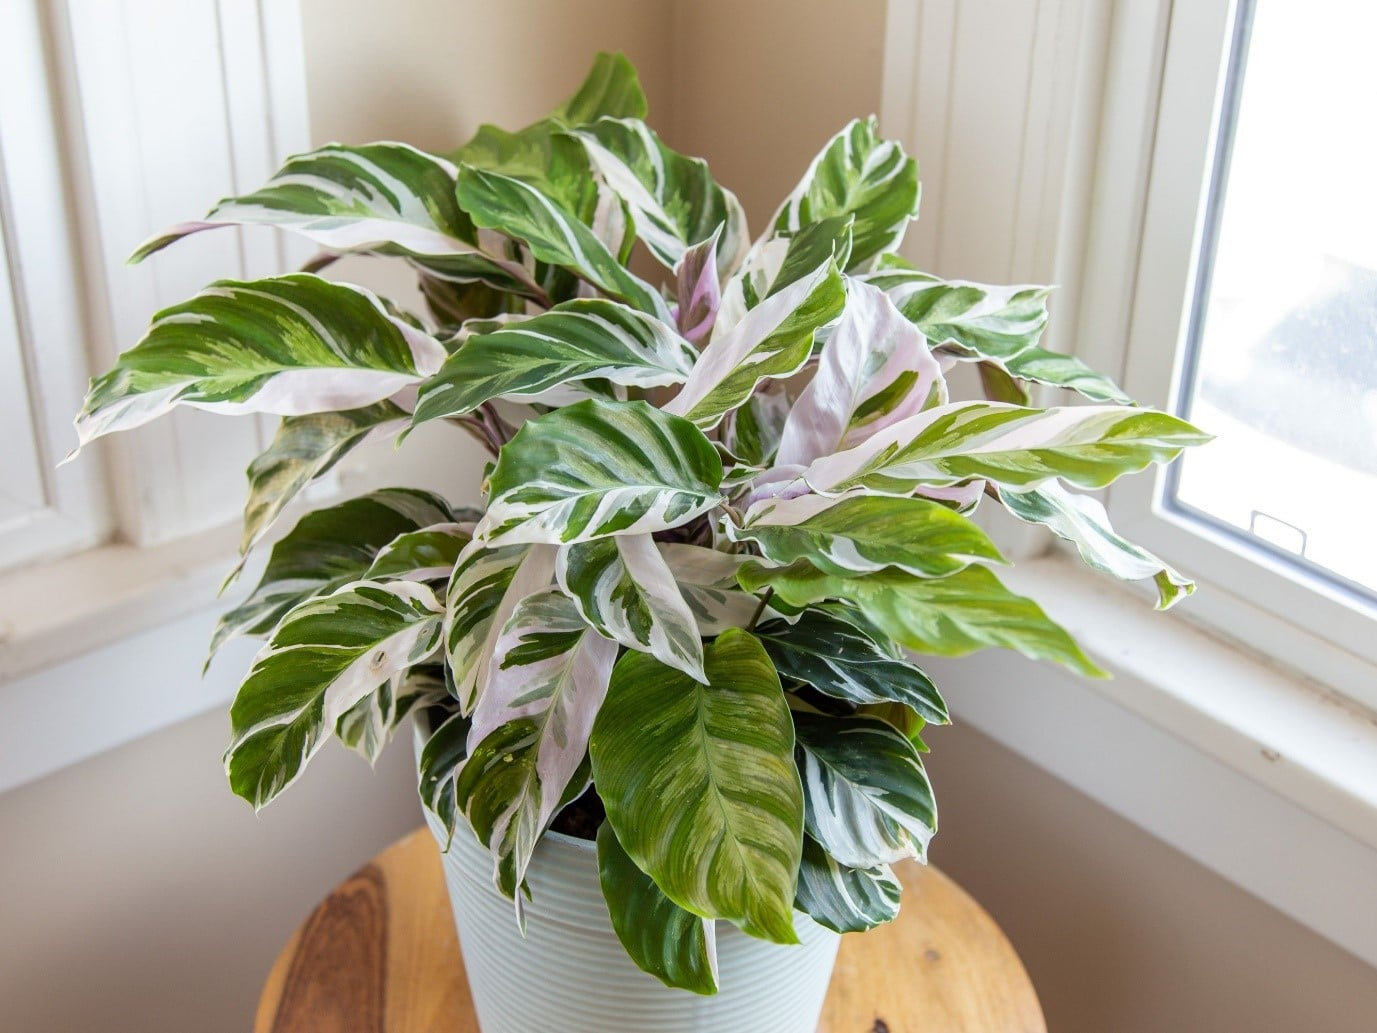 Care for Varieties of Calathea